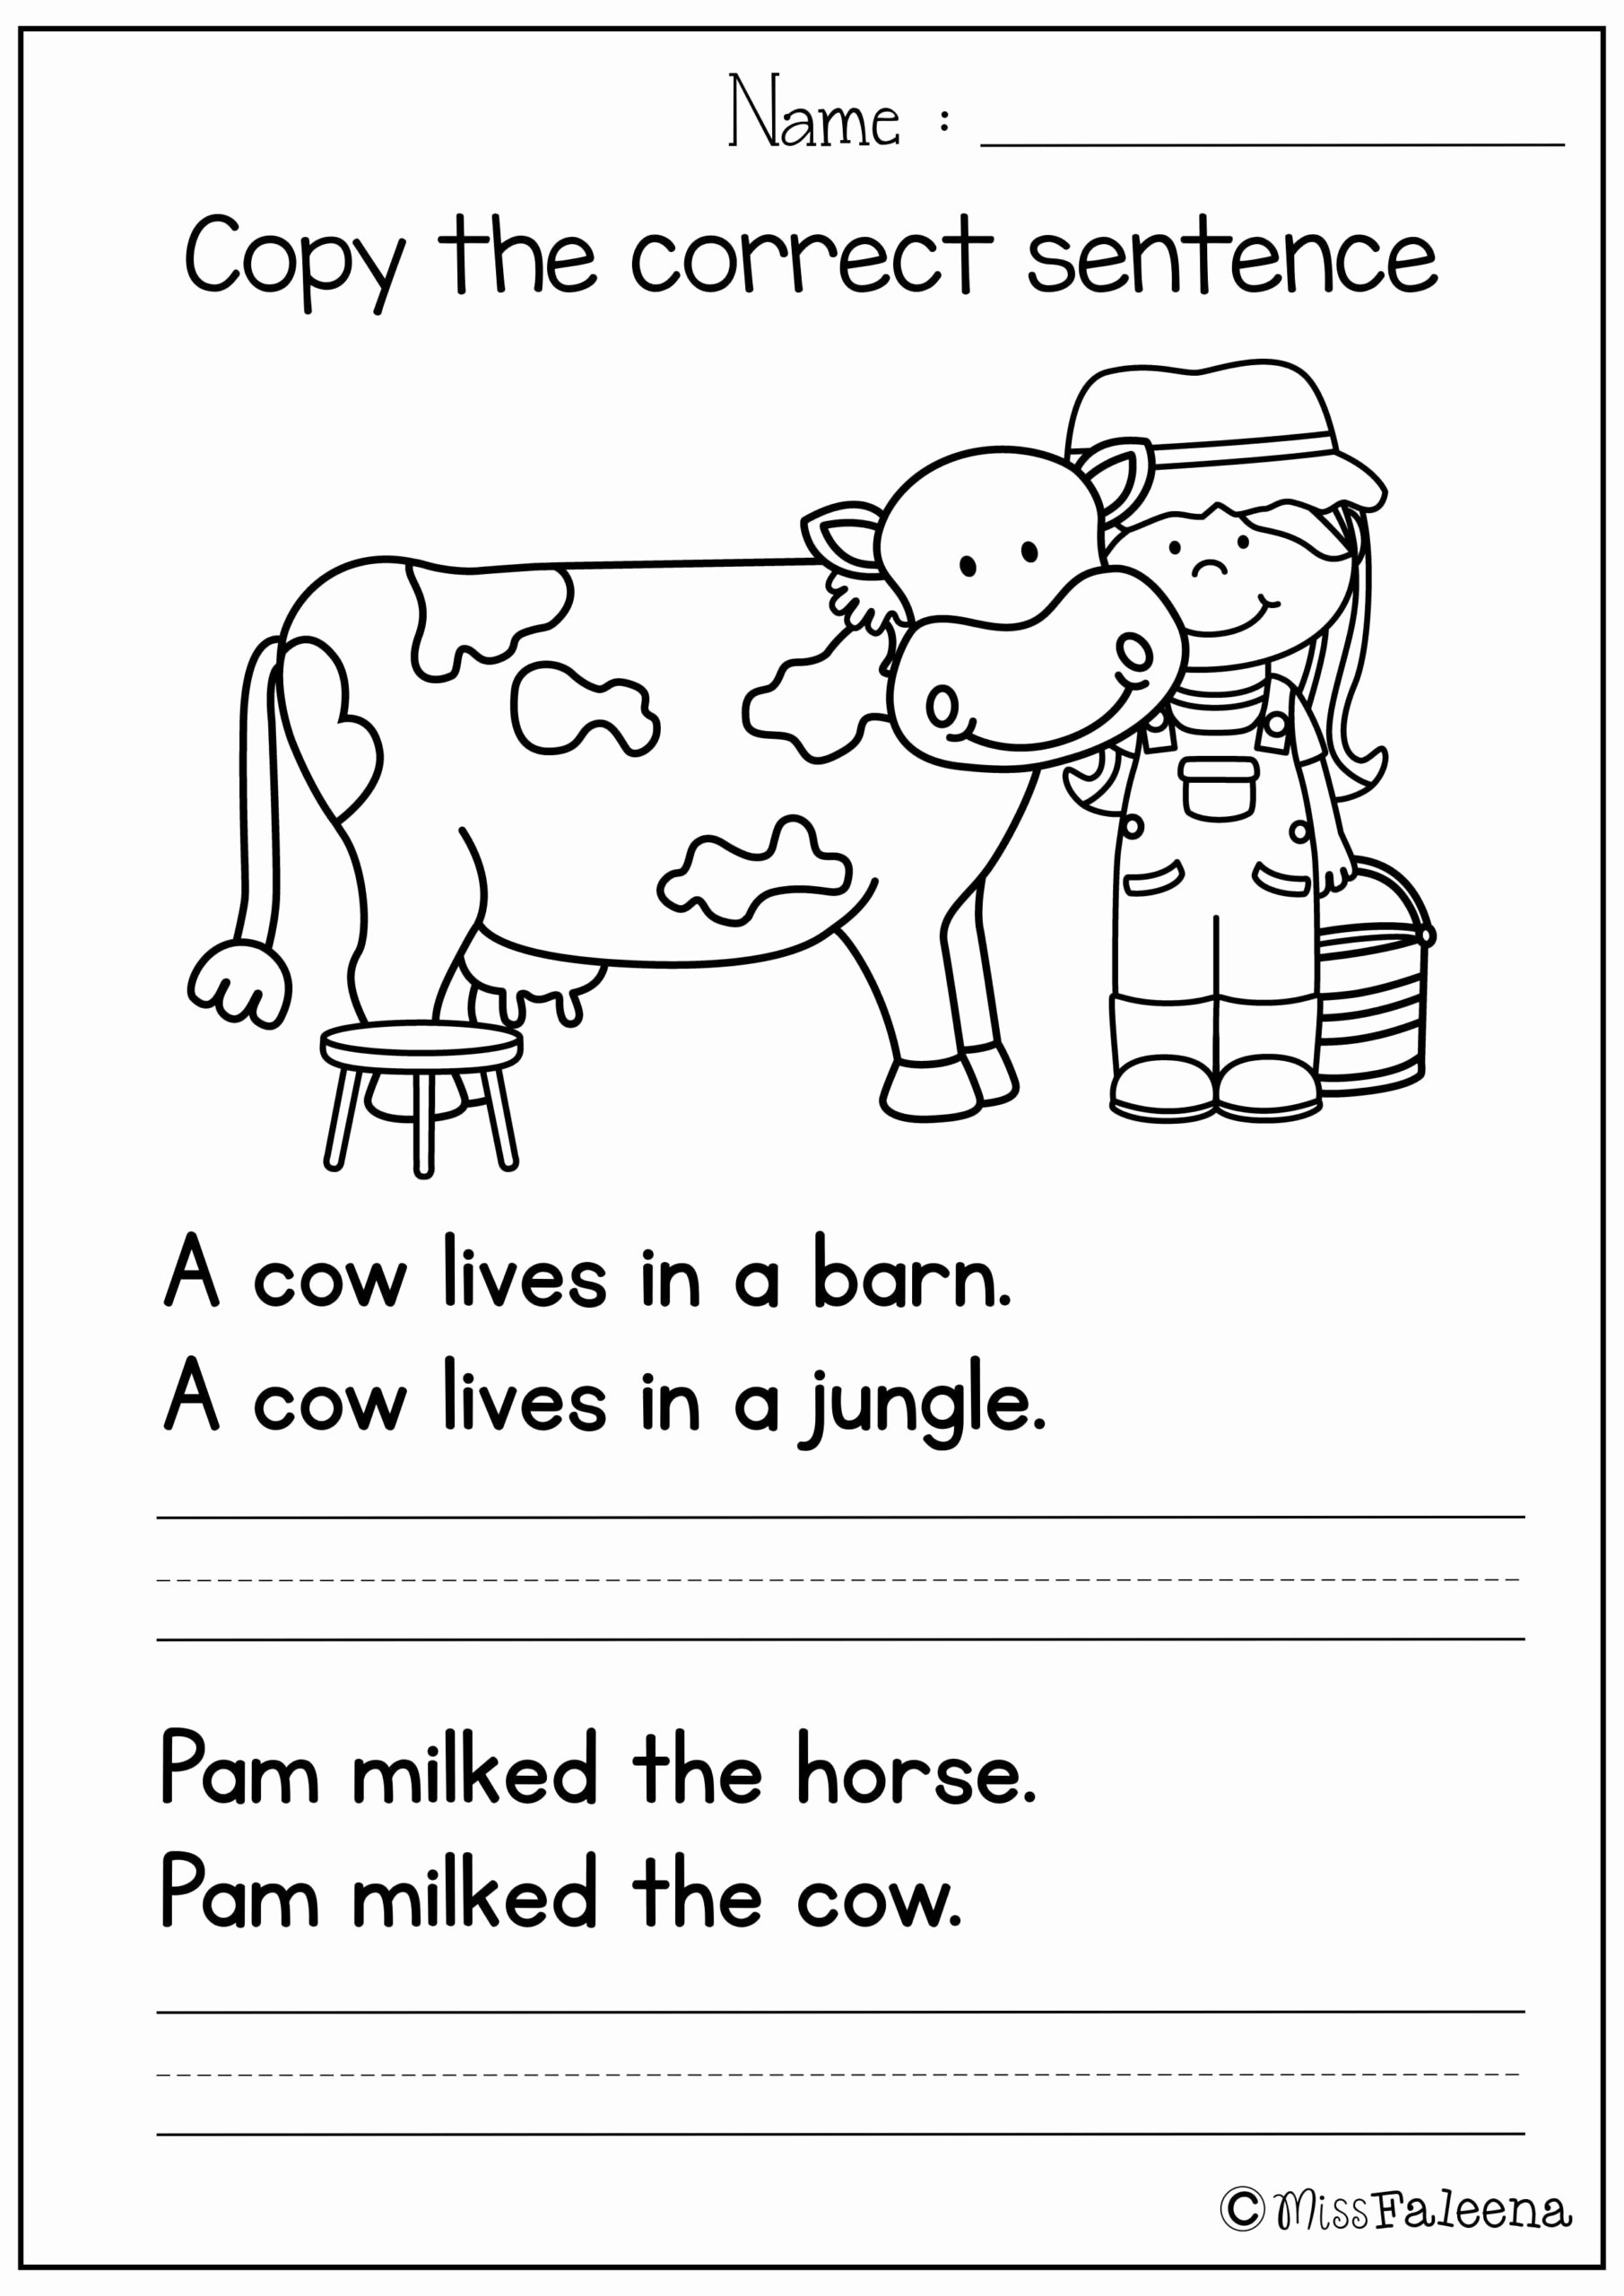 Cow Printable Worksheets for Preschoolers Inspirational Math Worksheet 50 Tremendous 1st Grade Free Printable